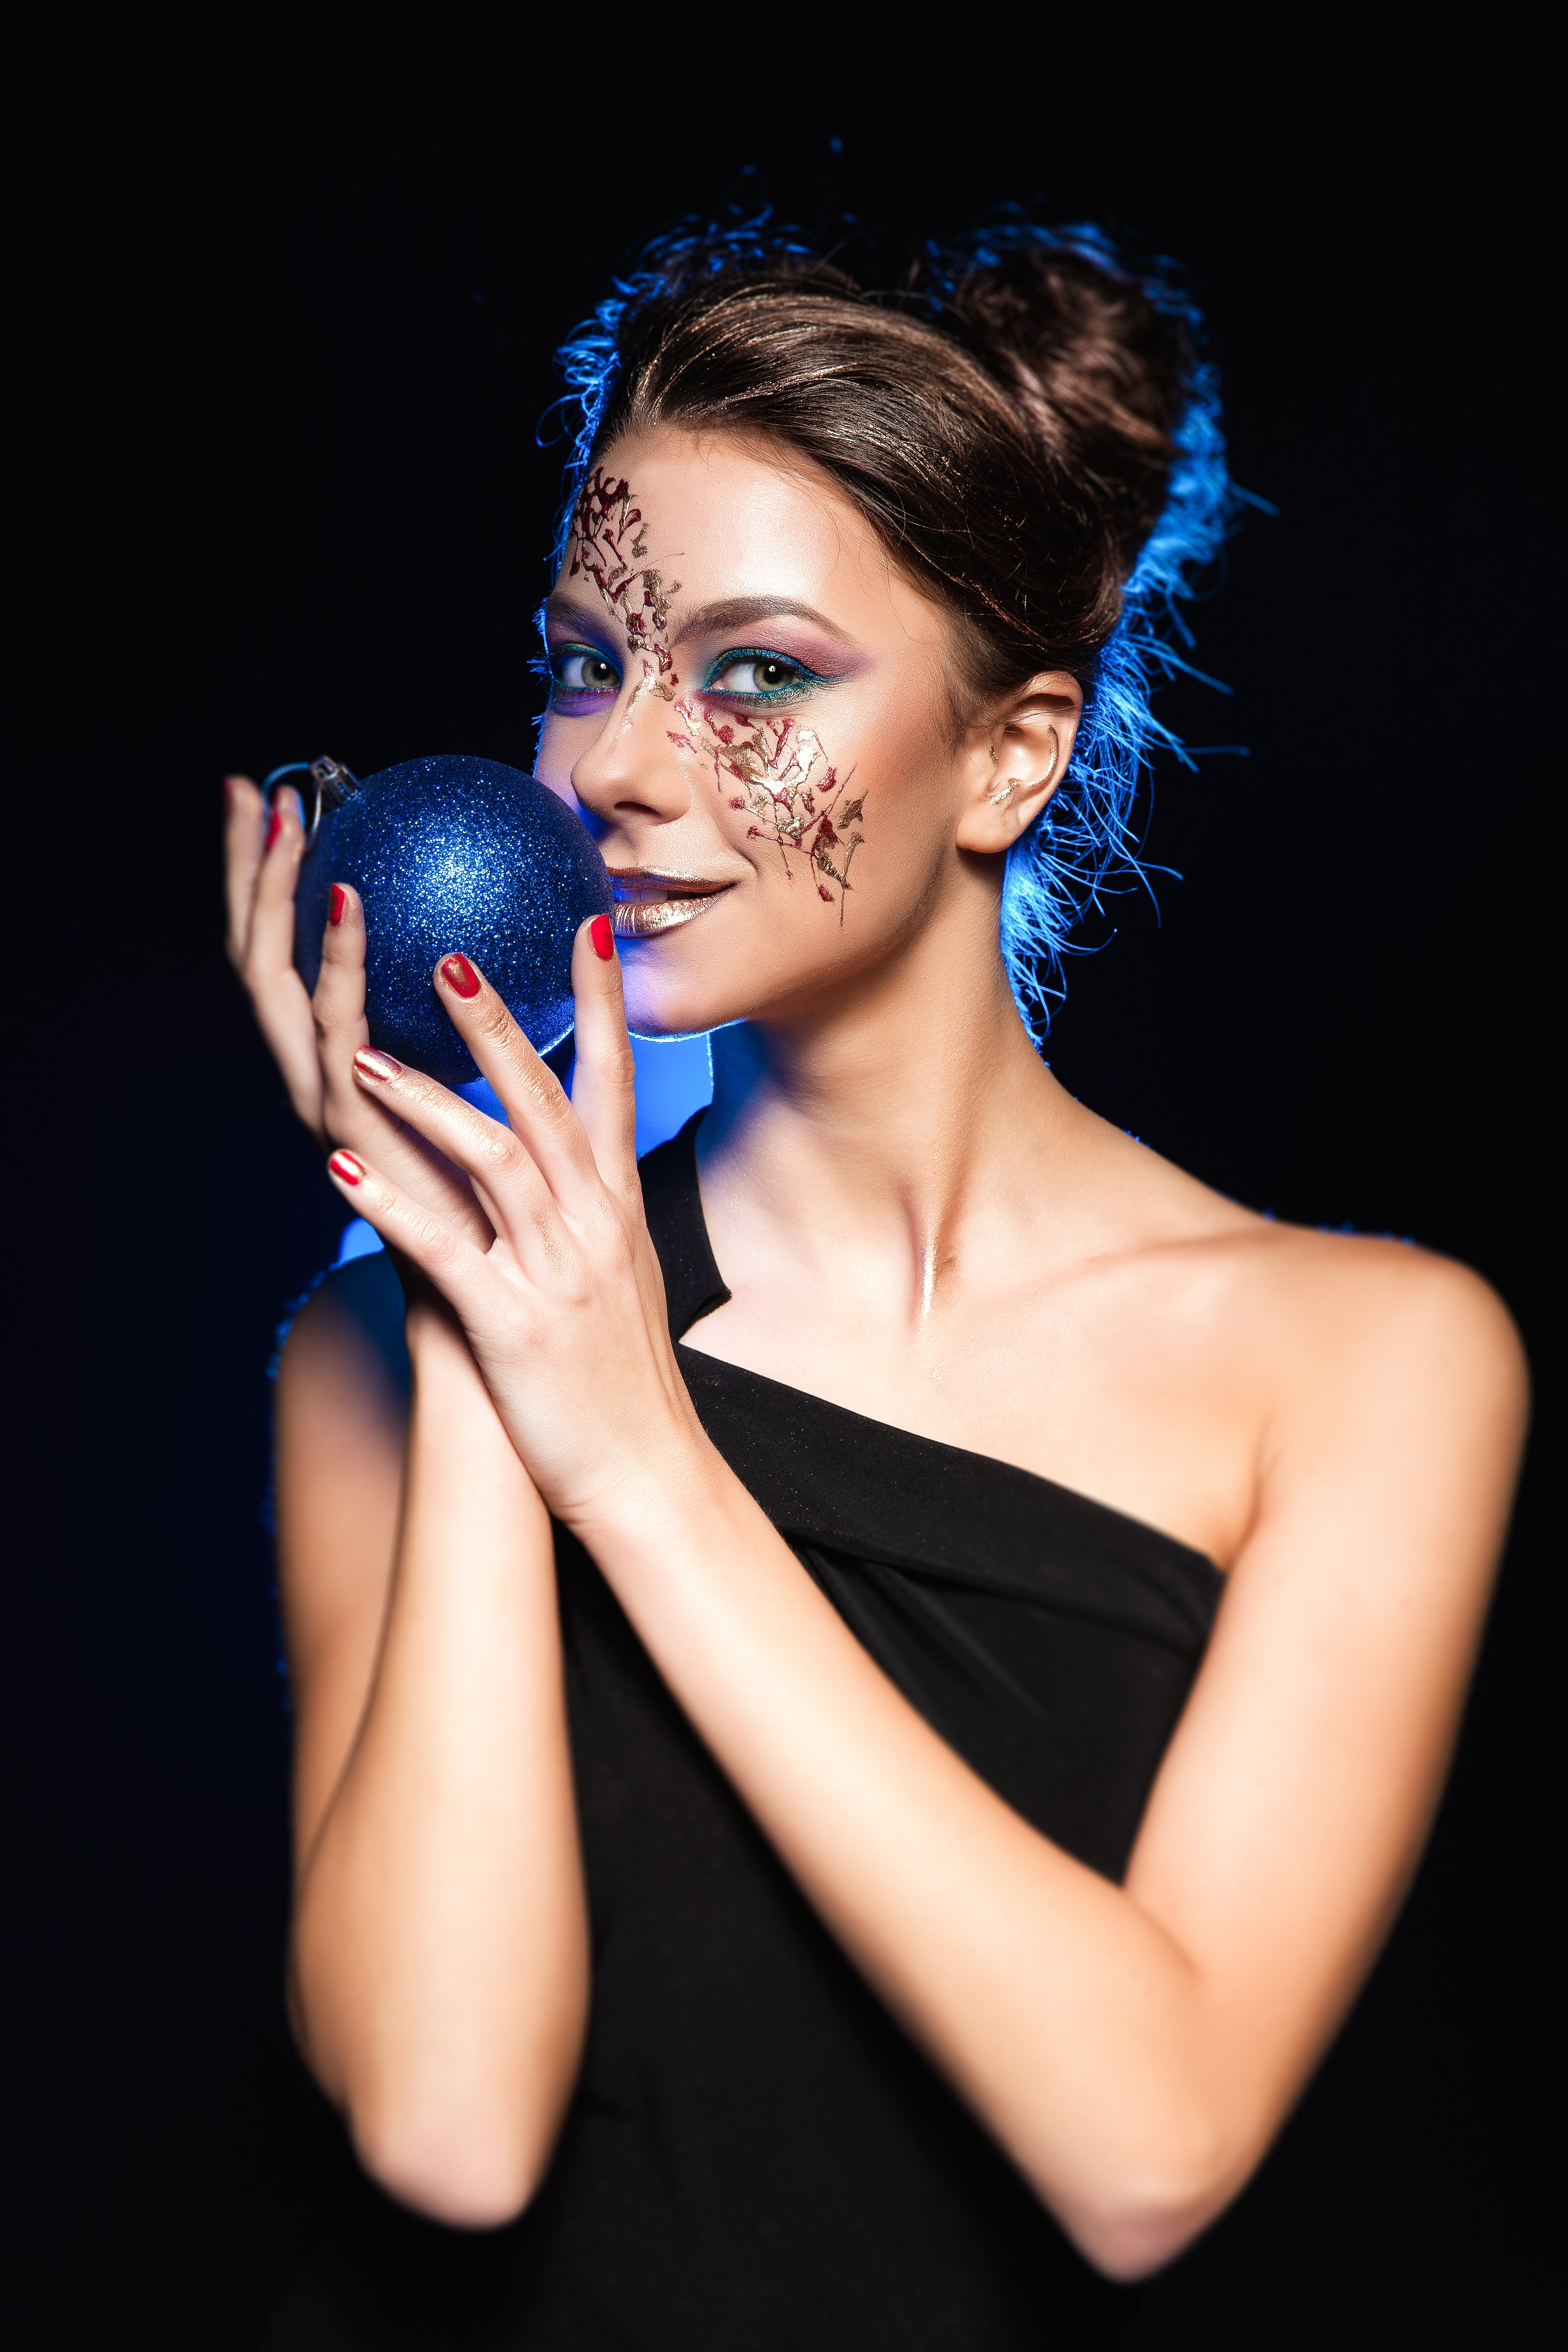 Woman Wearing Black One Shoulder Top Holding Bauble